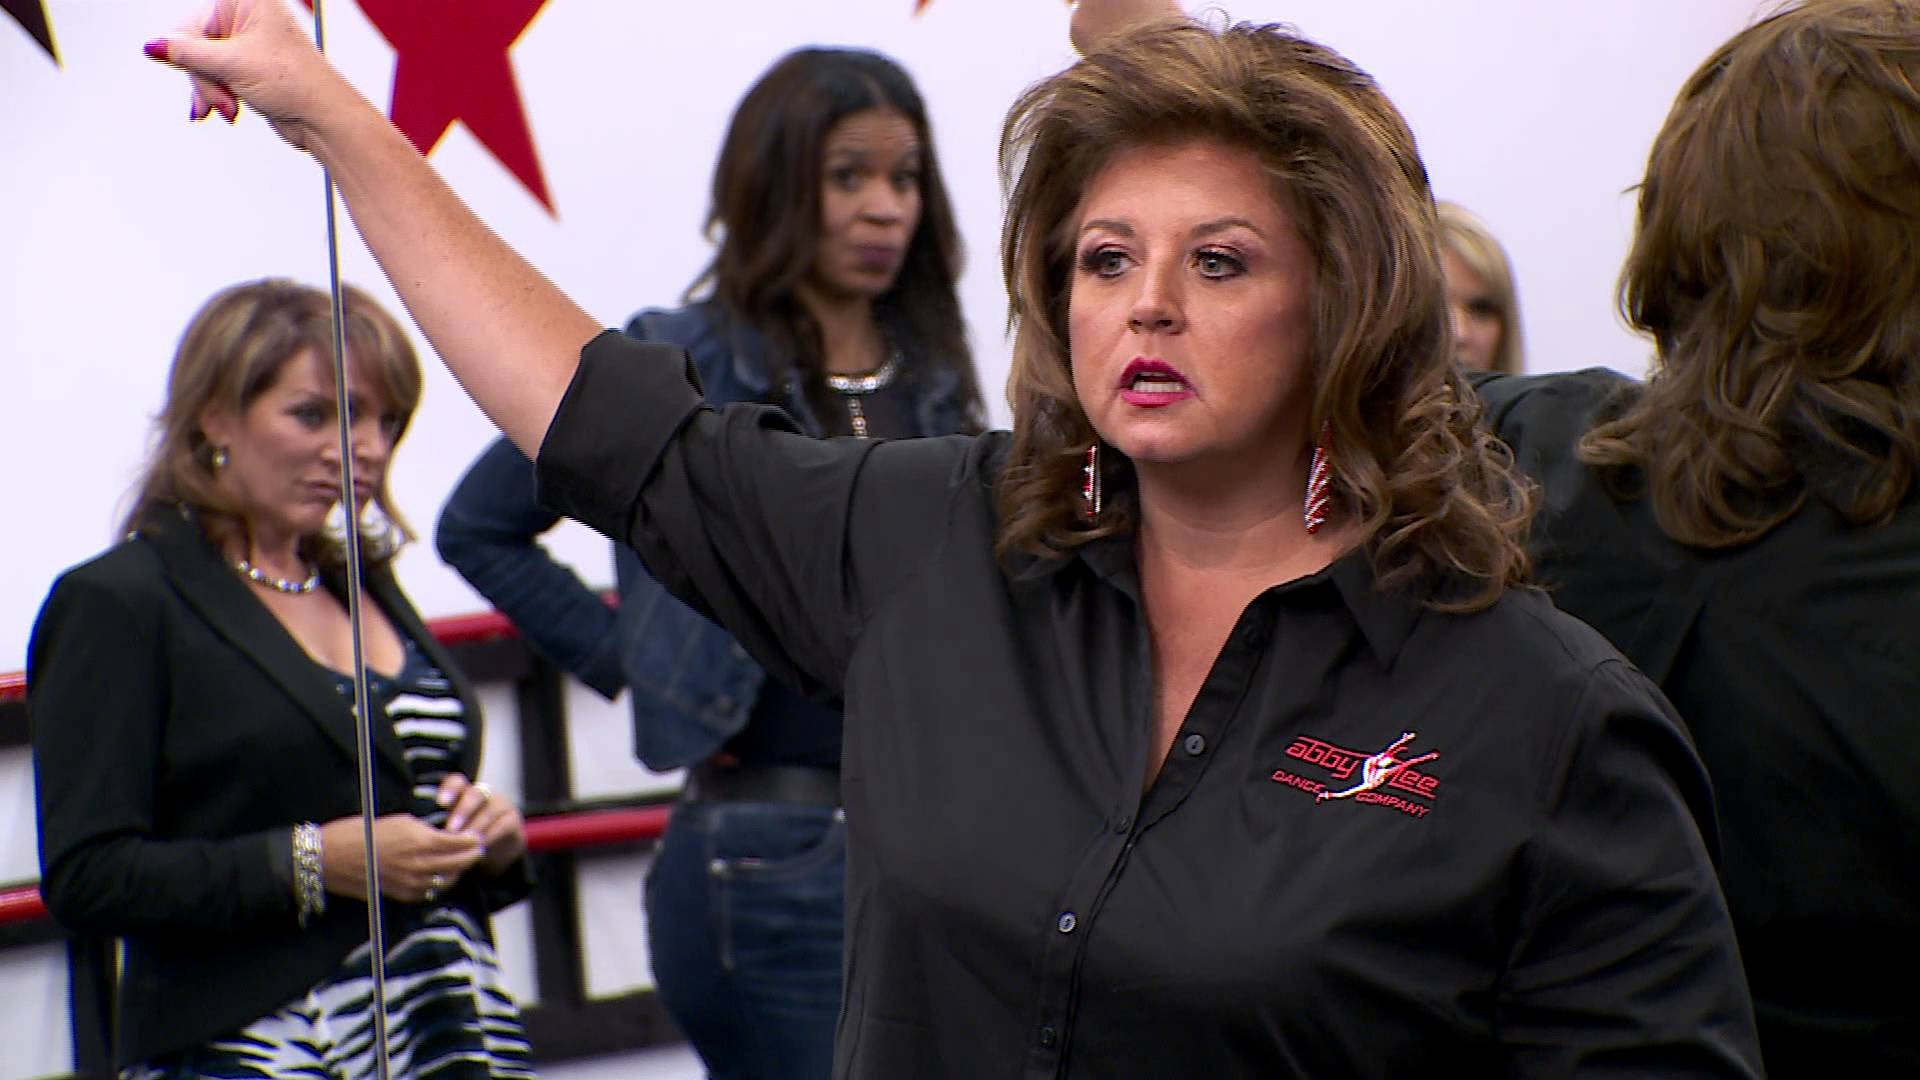 5 Shocking Things You Must Know About Dance Moms Season 5 (Sneak Peak)